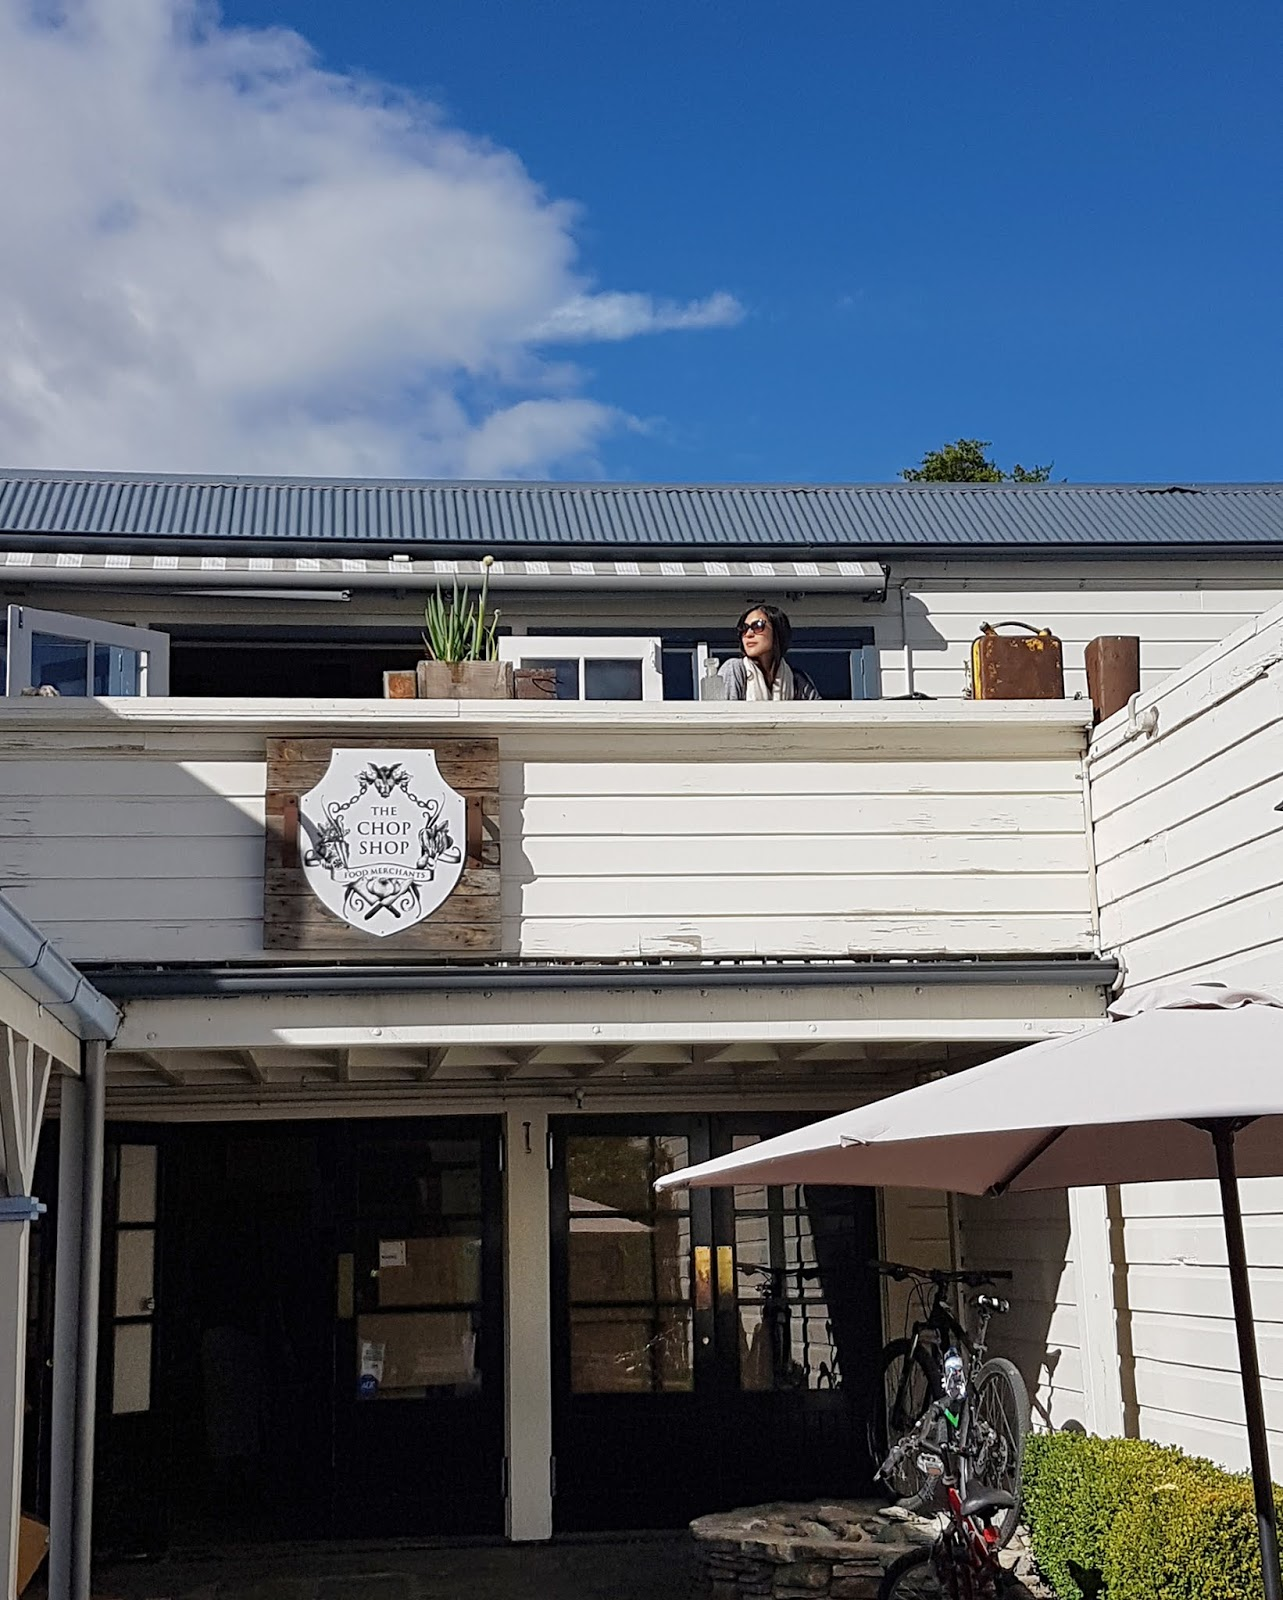 Euriental | luxury travel & style | The Chop Shop Arrowtown, New Zealand